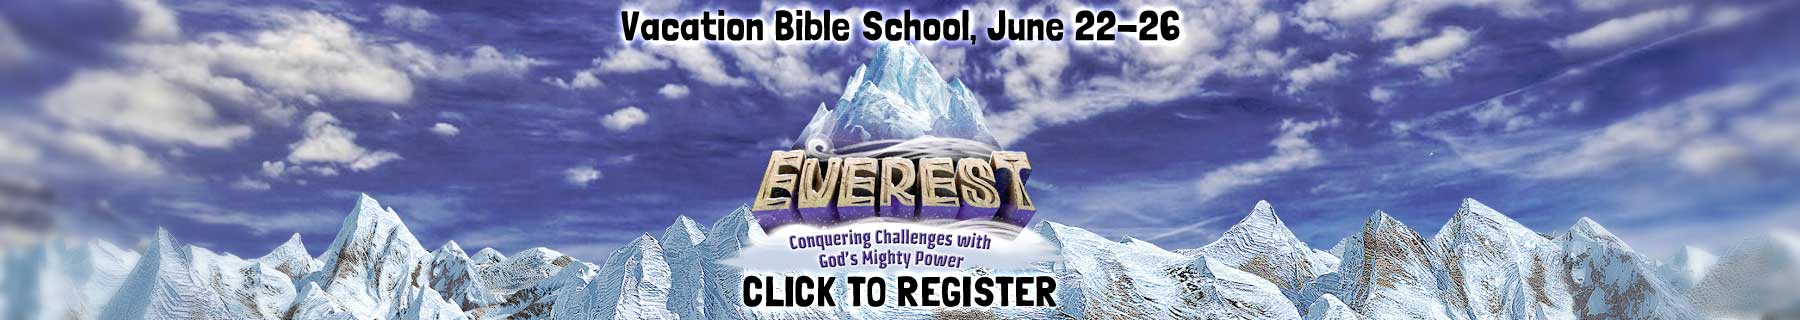 Everest: Vacation Bible School 2015